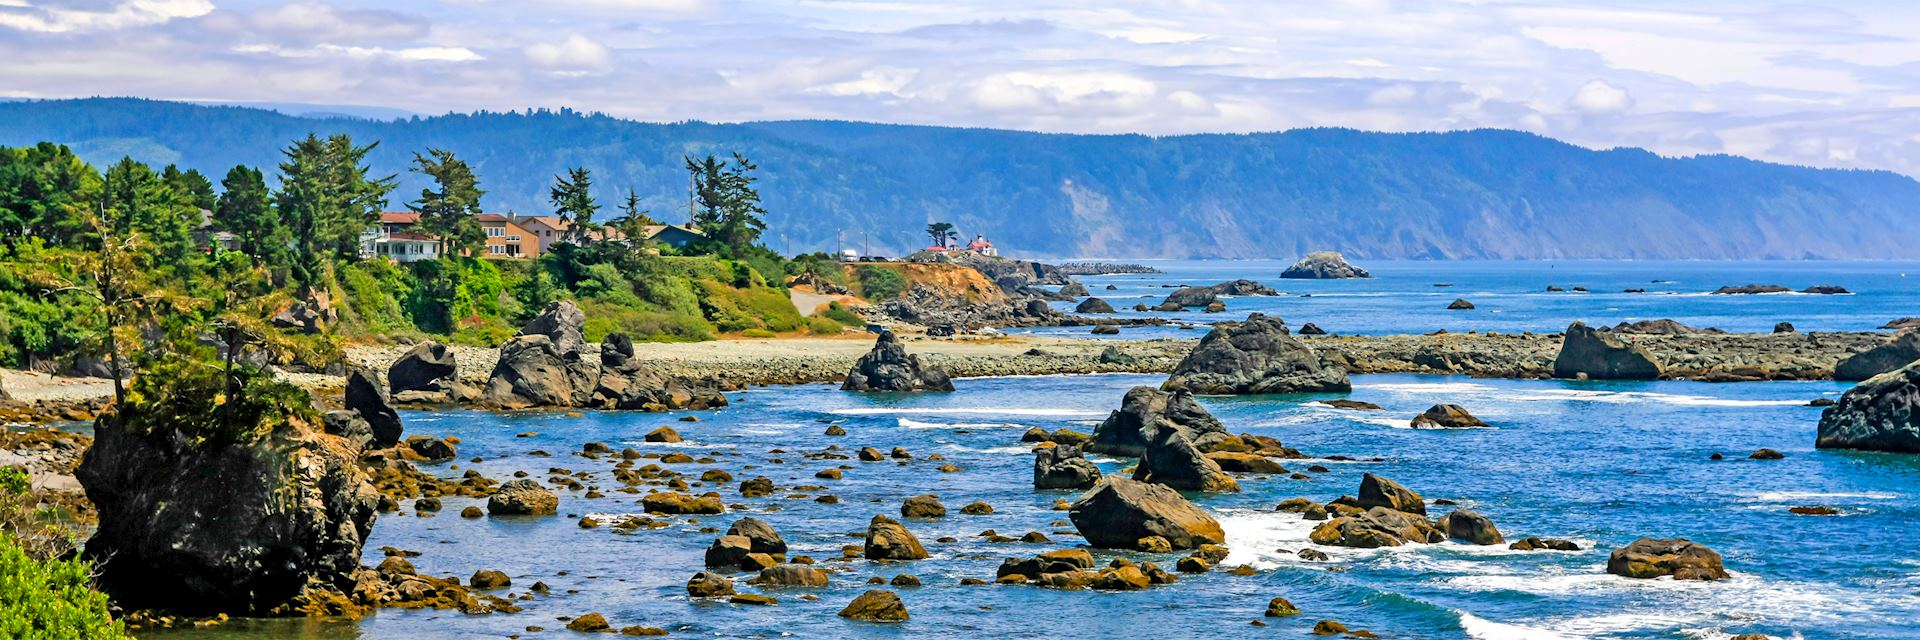 Pacific coastline at Crescent City